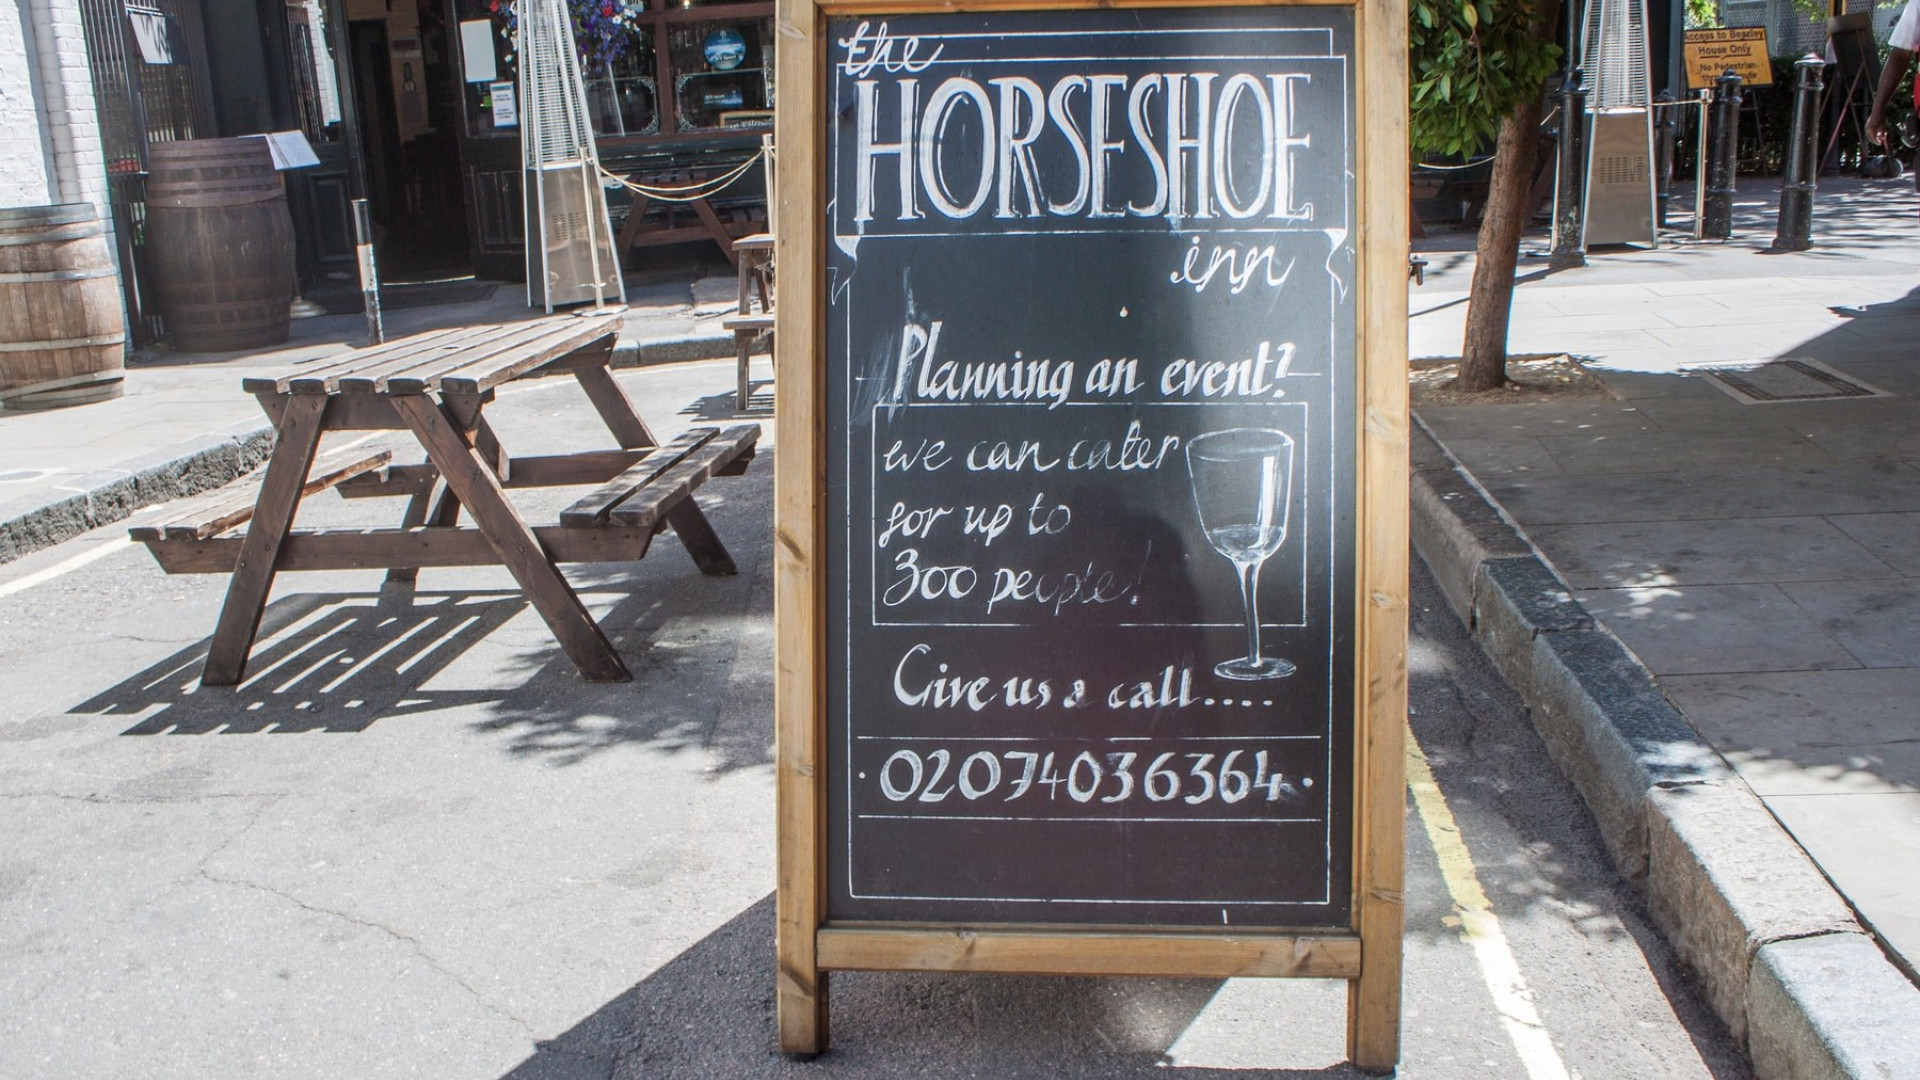 Best pubs in London Bridge – The Horseshoe Inn